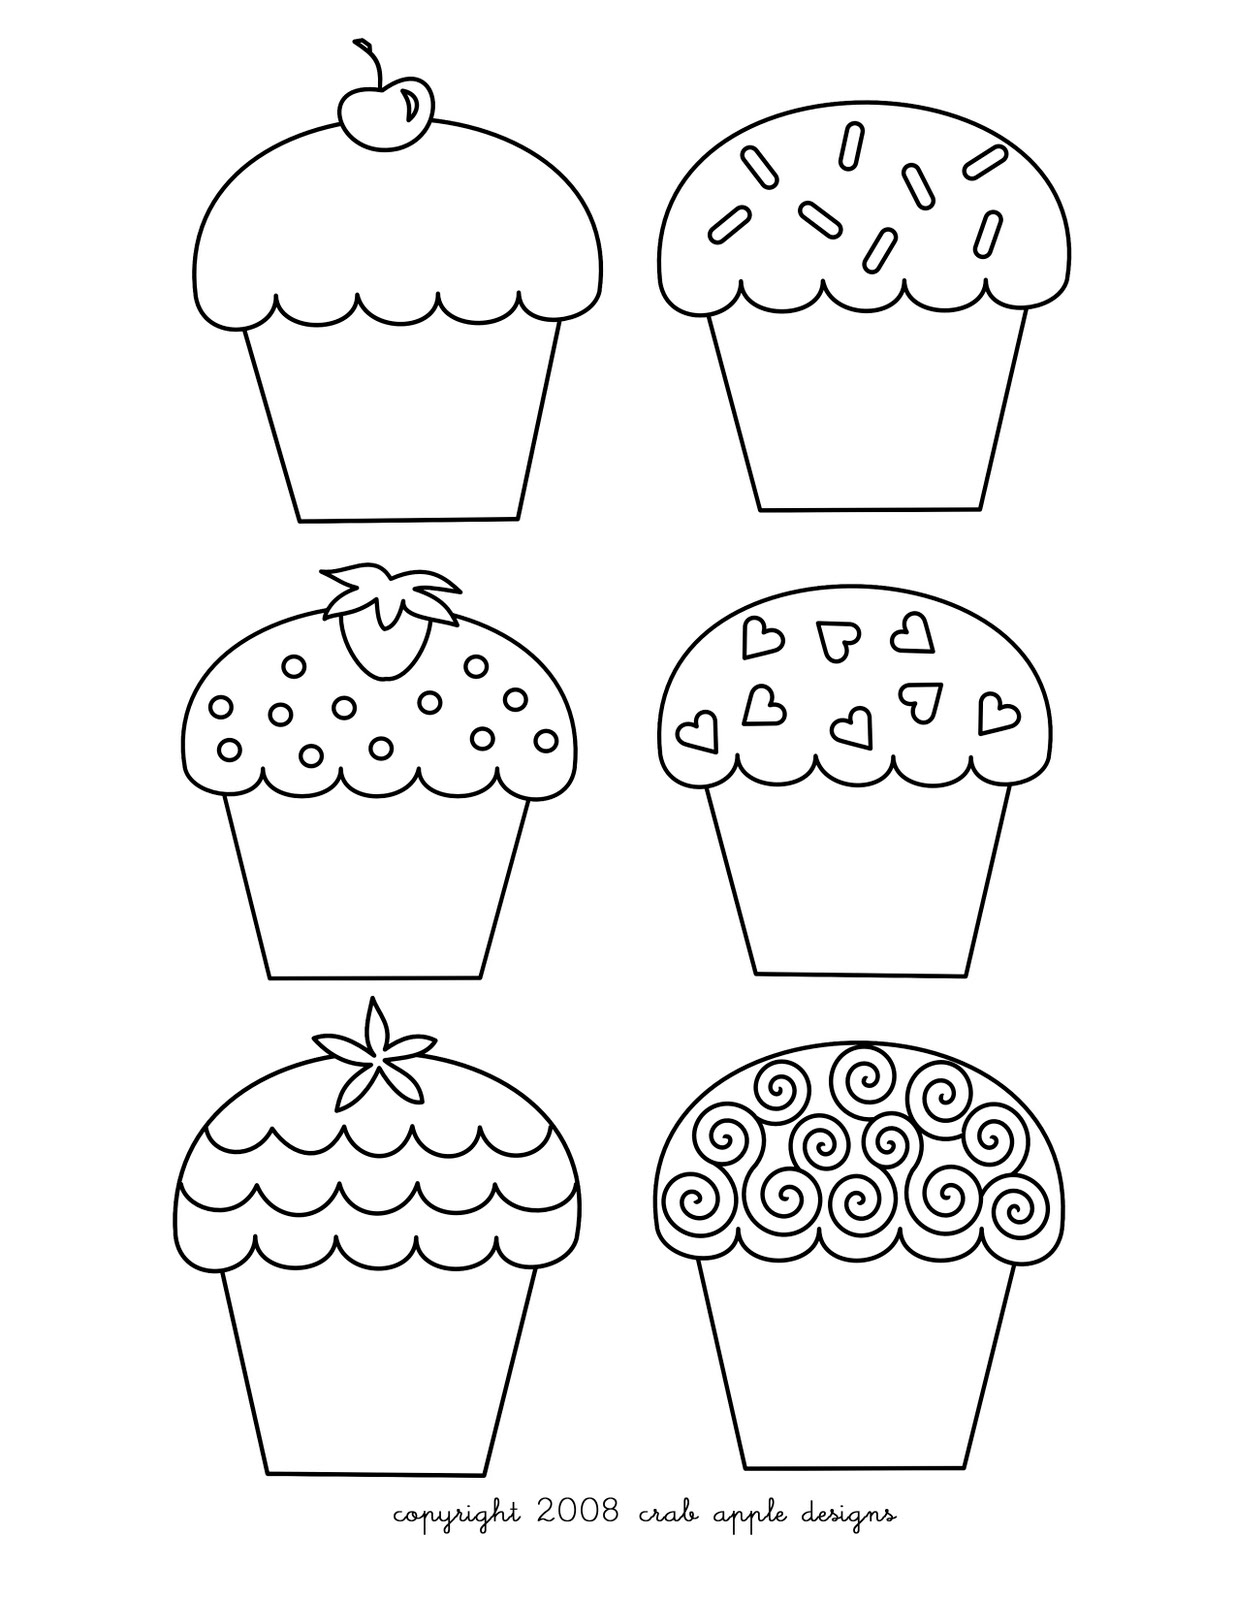 cupcake colouring template best cupcake outline 8279 clipartioncom colouring cupcake template